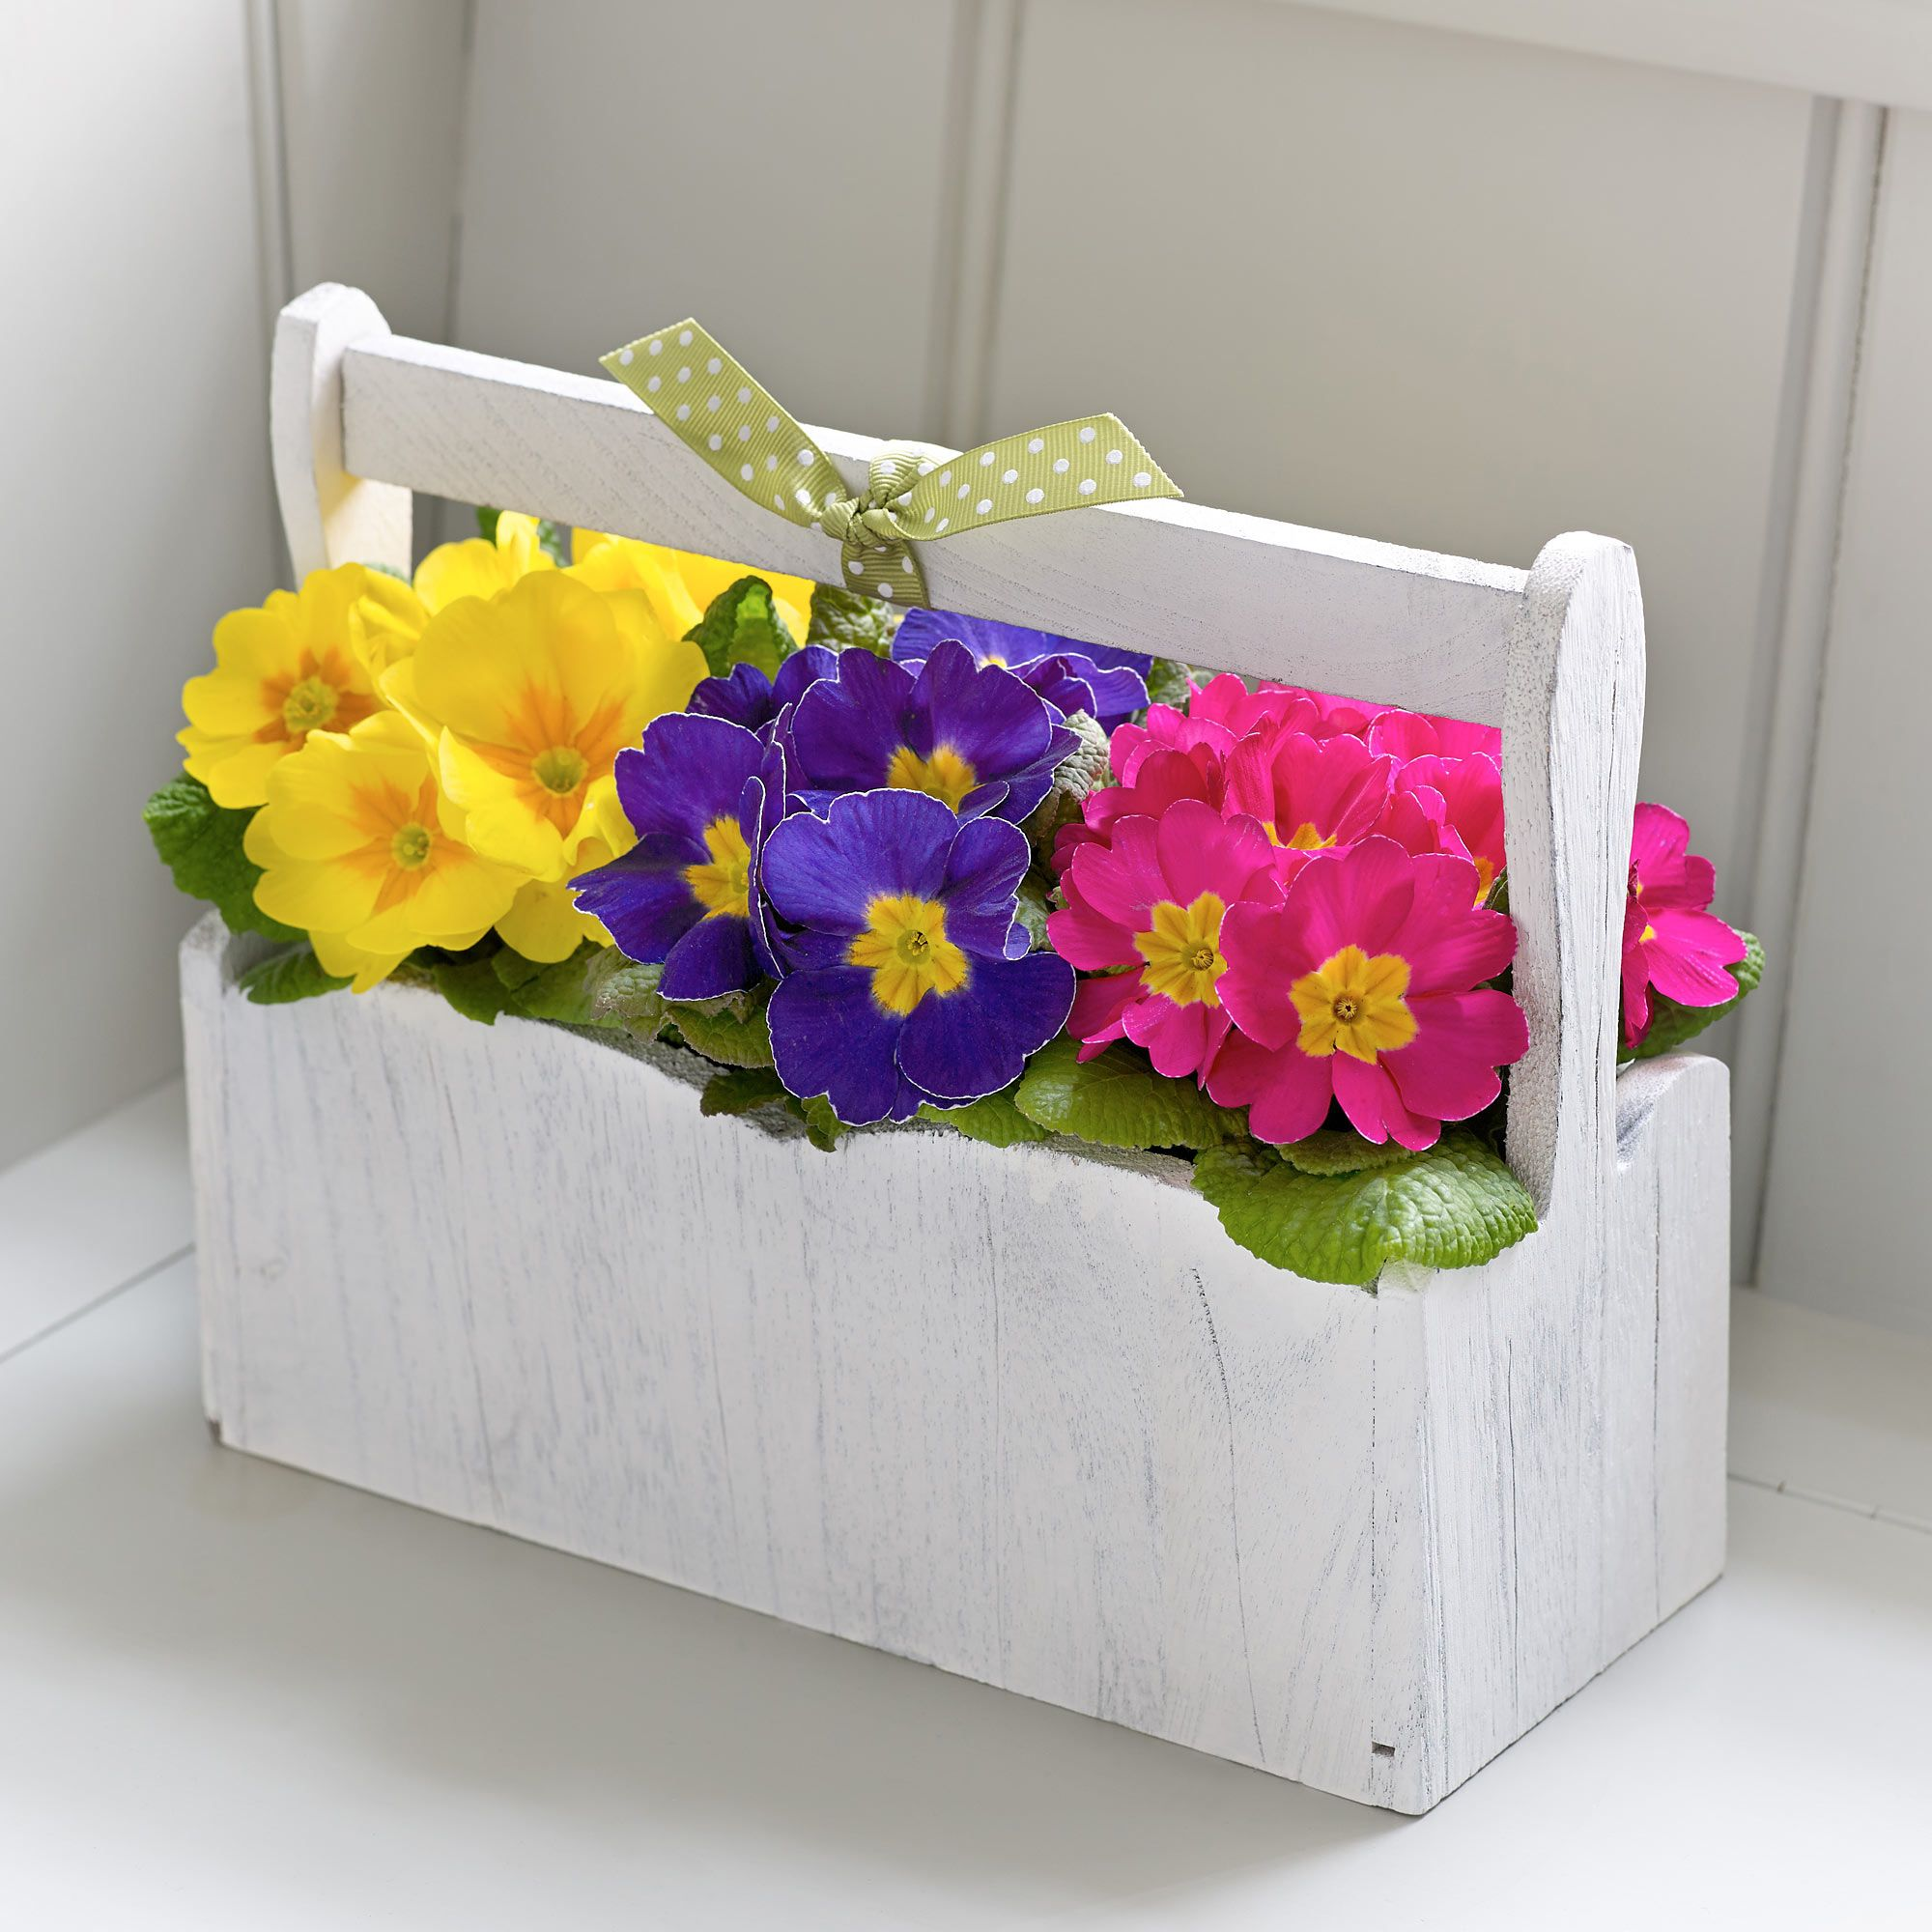 Spring Primrose Planter Interflora 1999 Flowers Pinterest